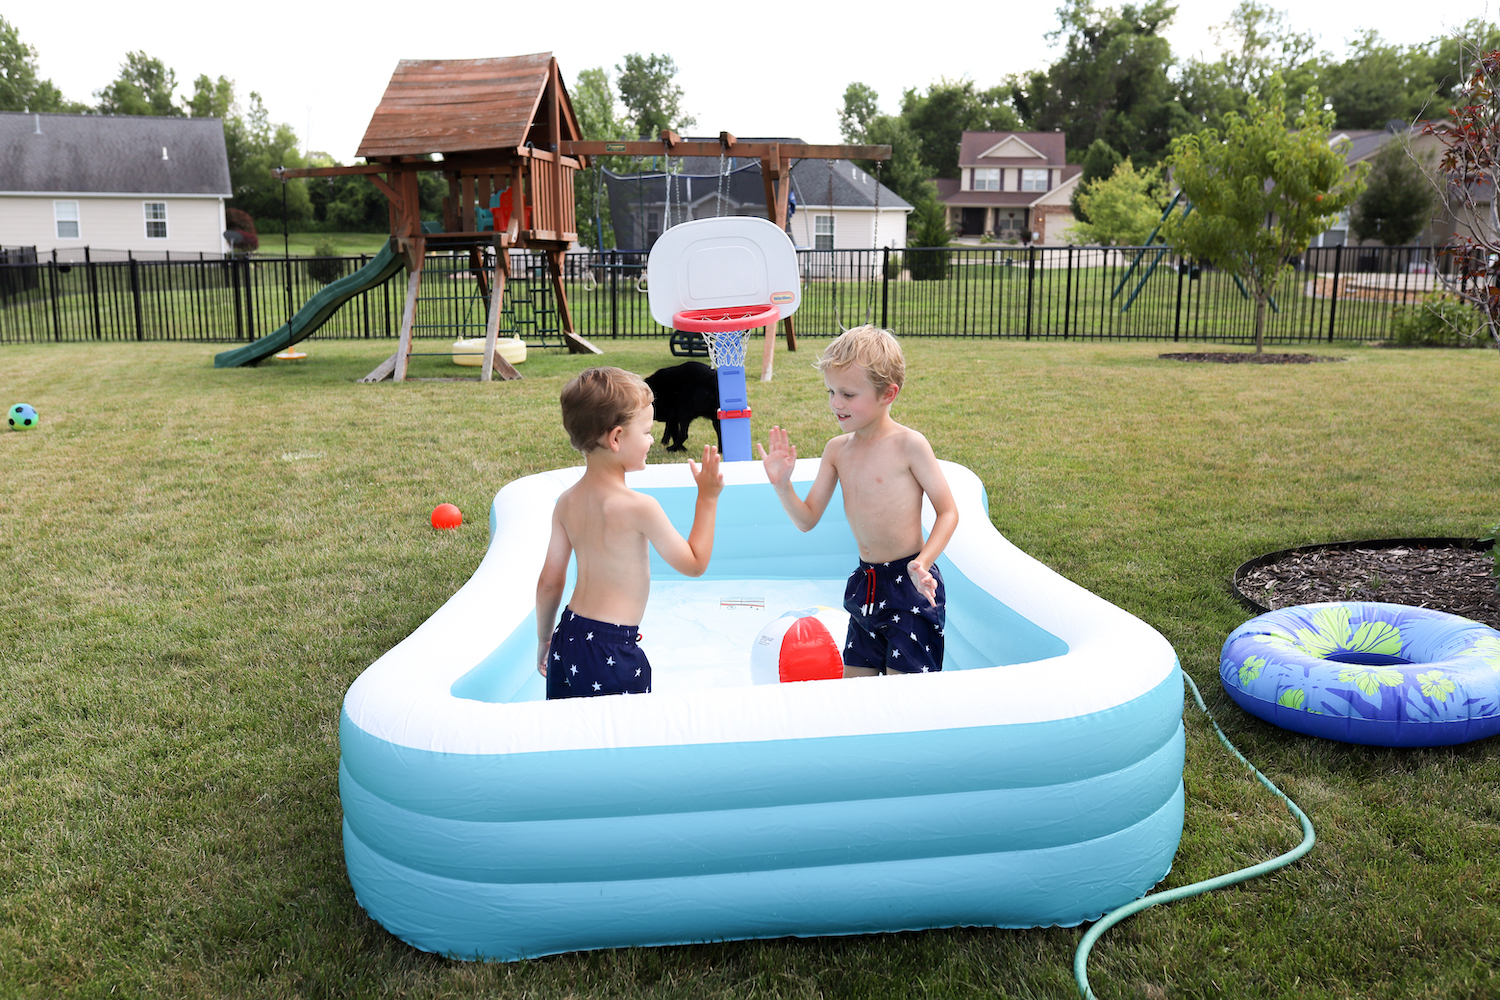 How To Cool Off In Summer + The Home Protection Plan You Need from Hoffmann Brothers in St. Louis, MO